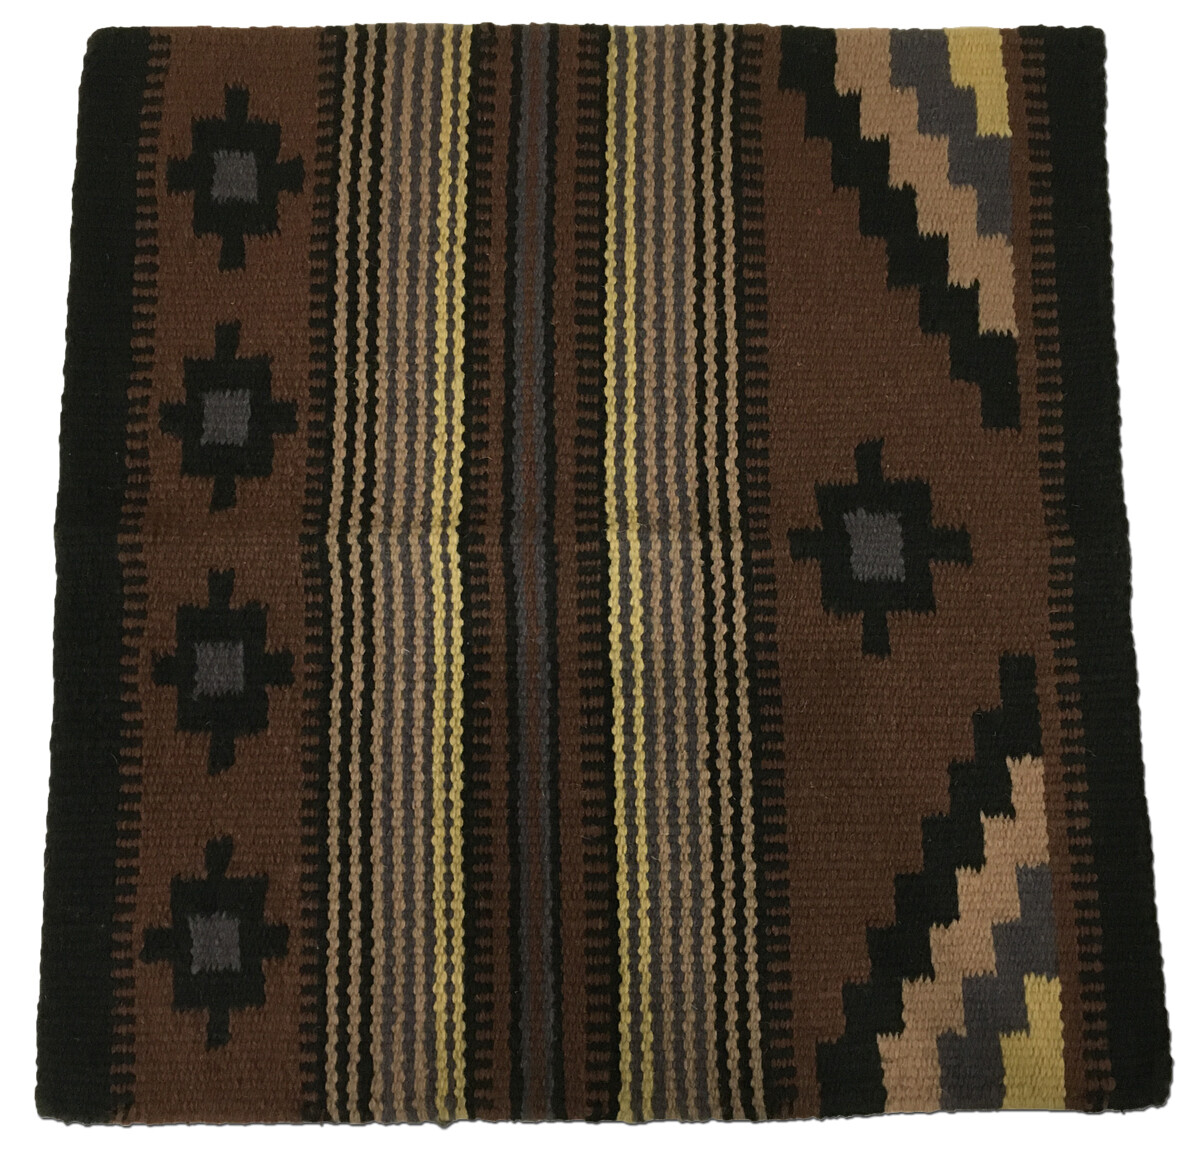 4lb Saddle Blanket #15